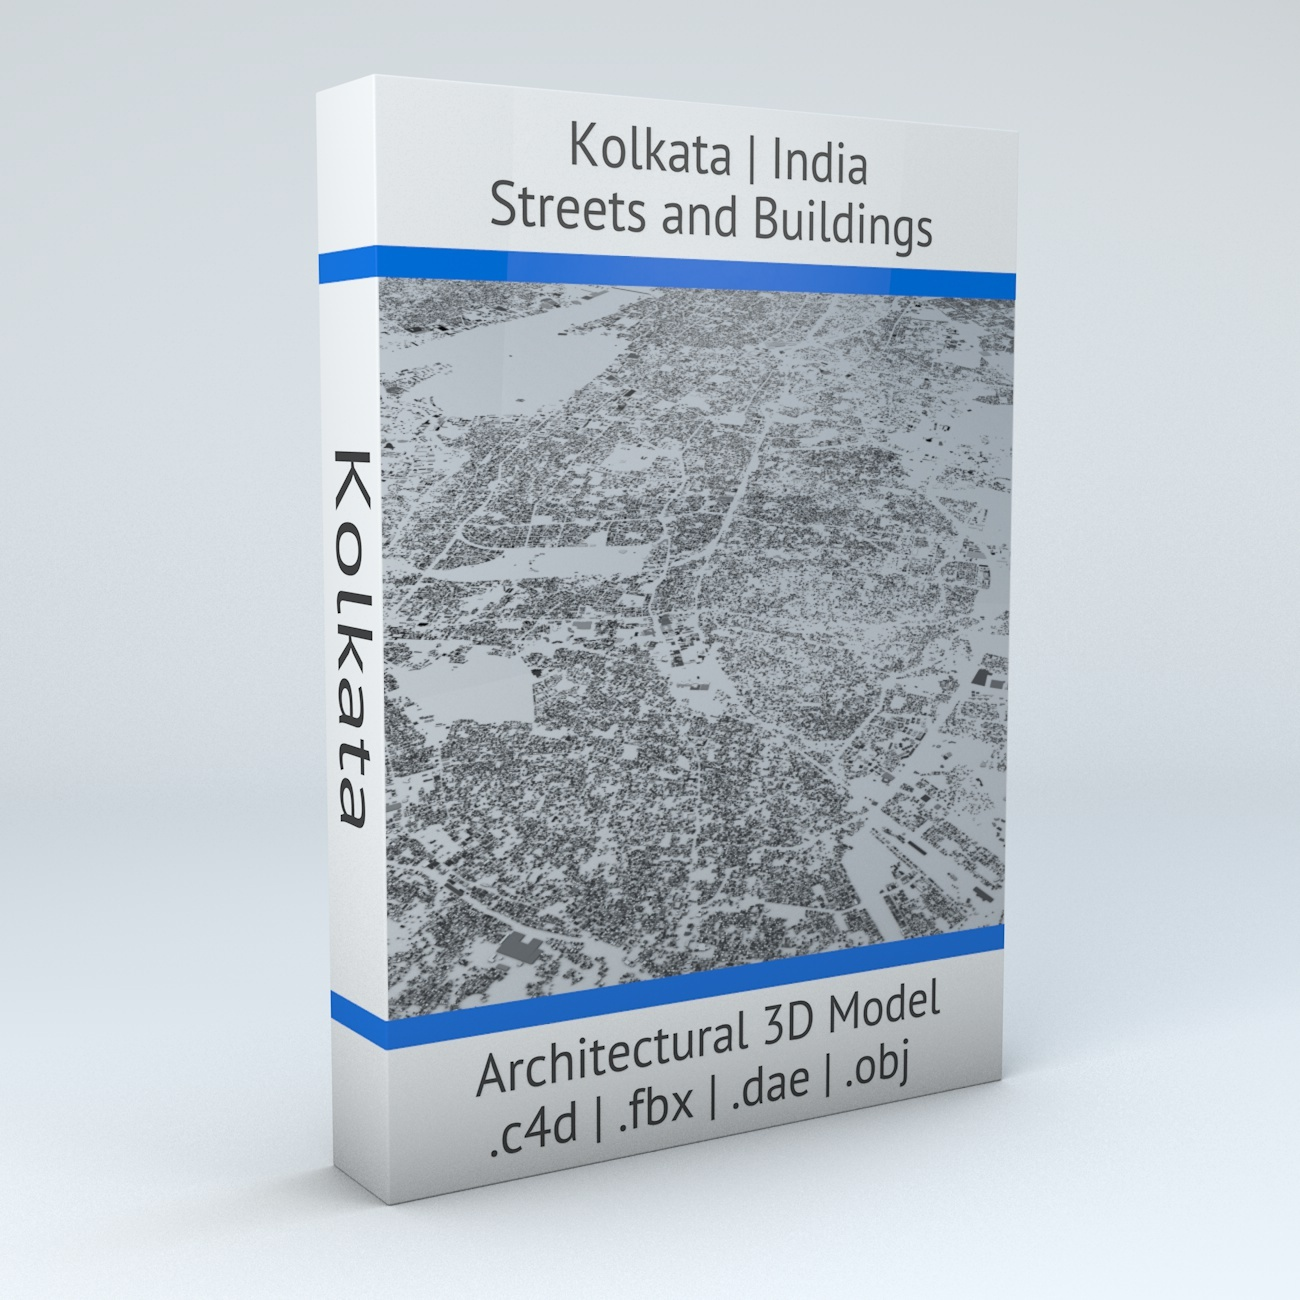 Kolkata Streets and Buildings Architectural 3D Model